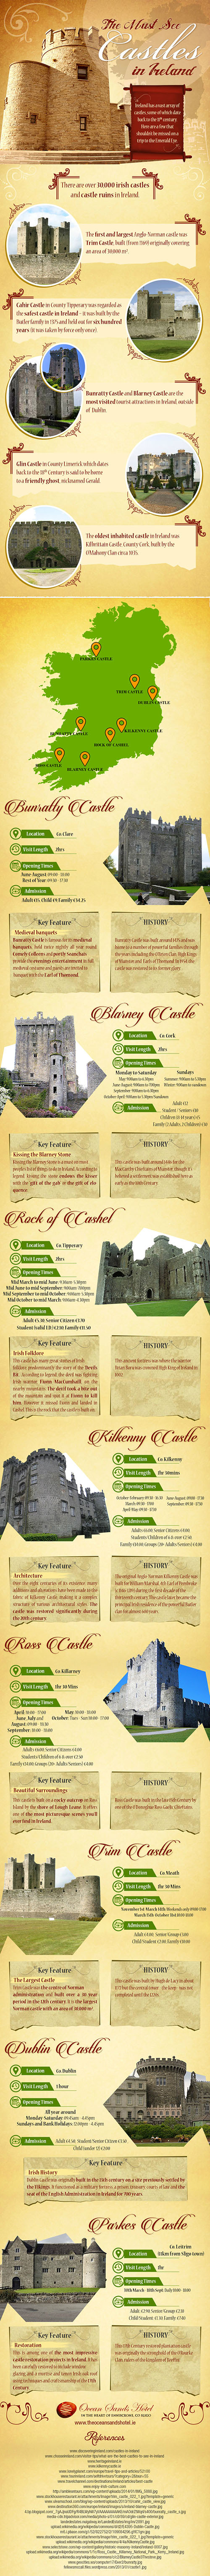 Must see castles in Ireland